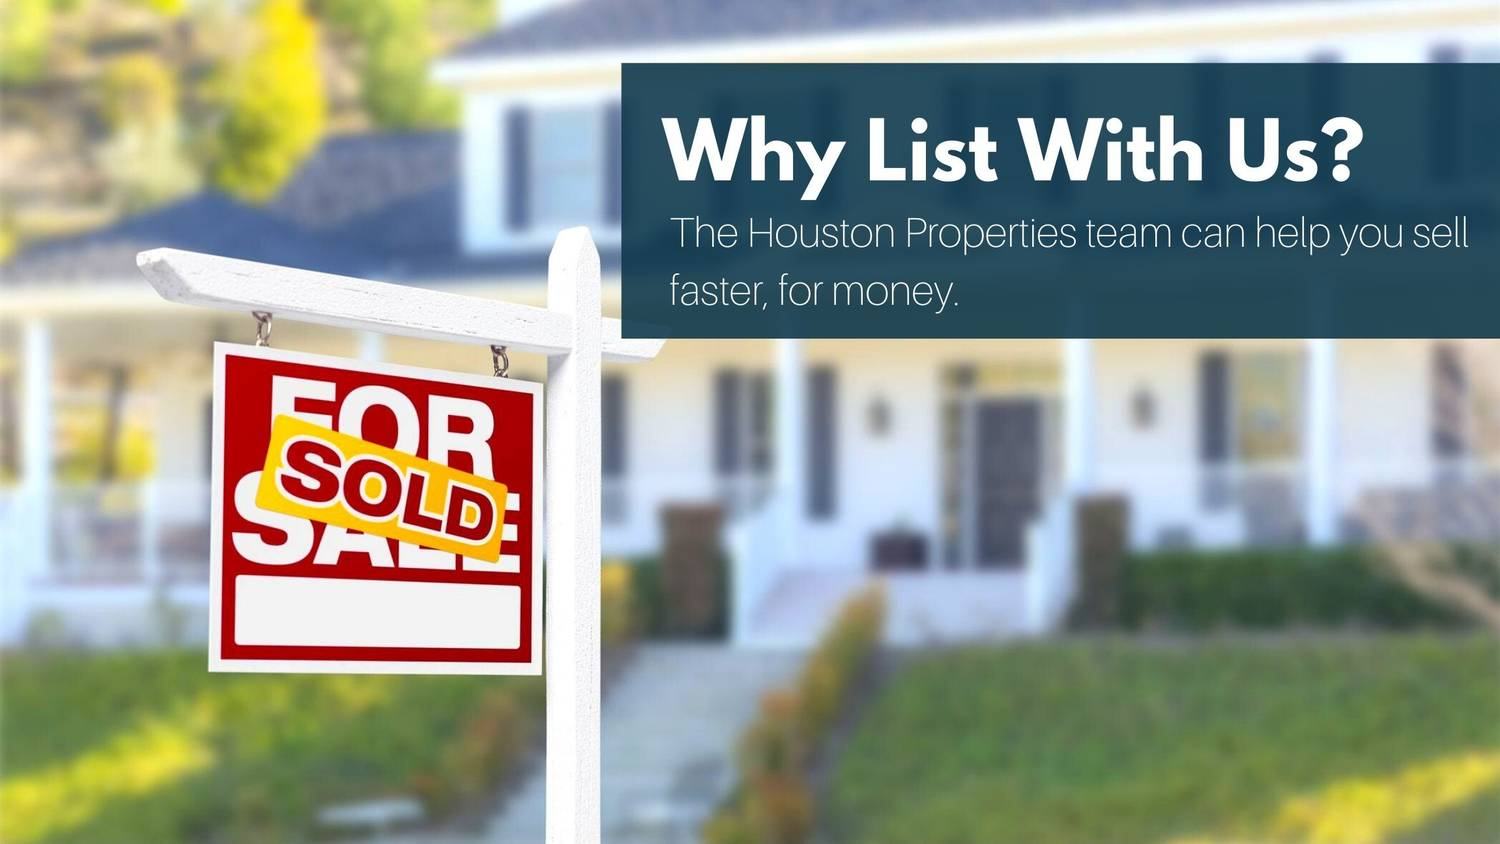 Our Listings Sell Faster and For More Money